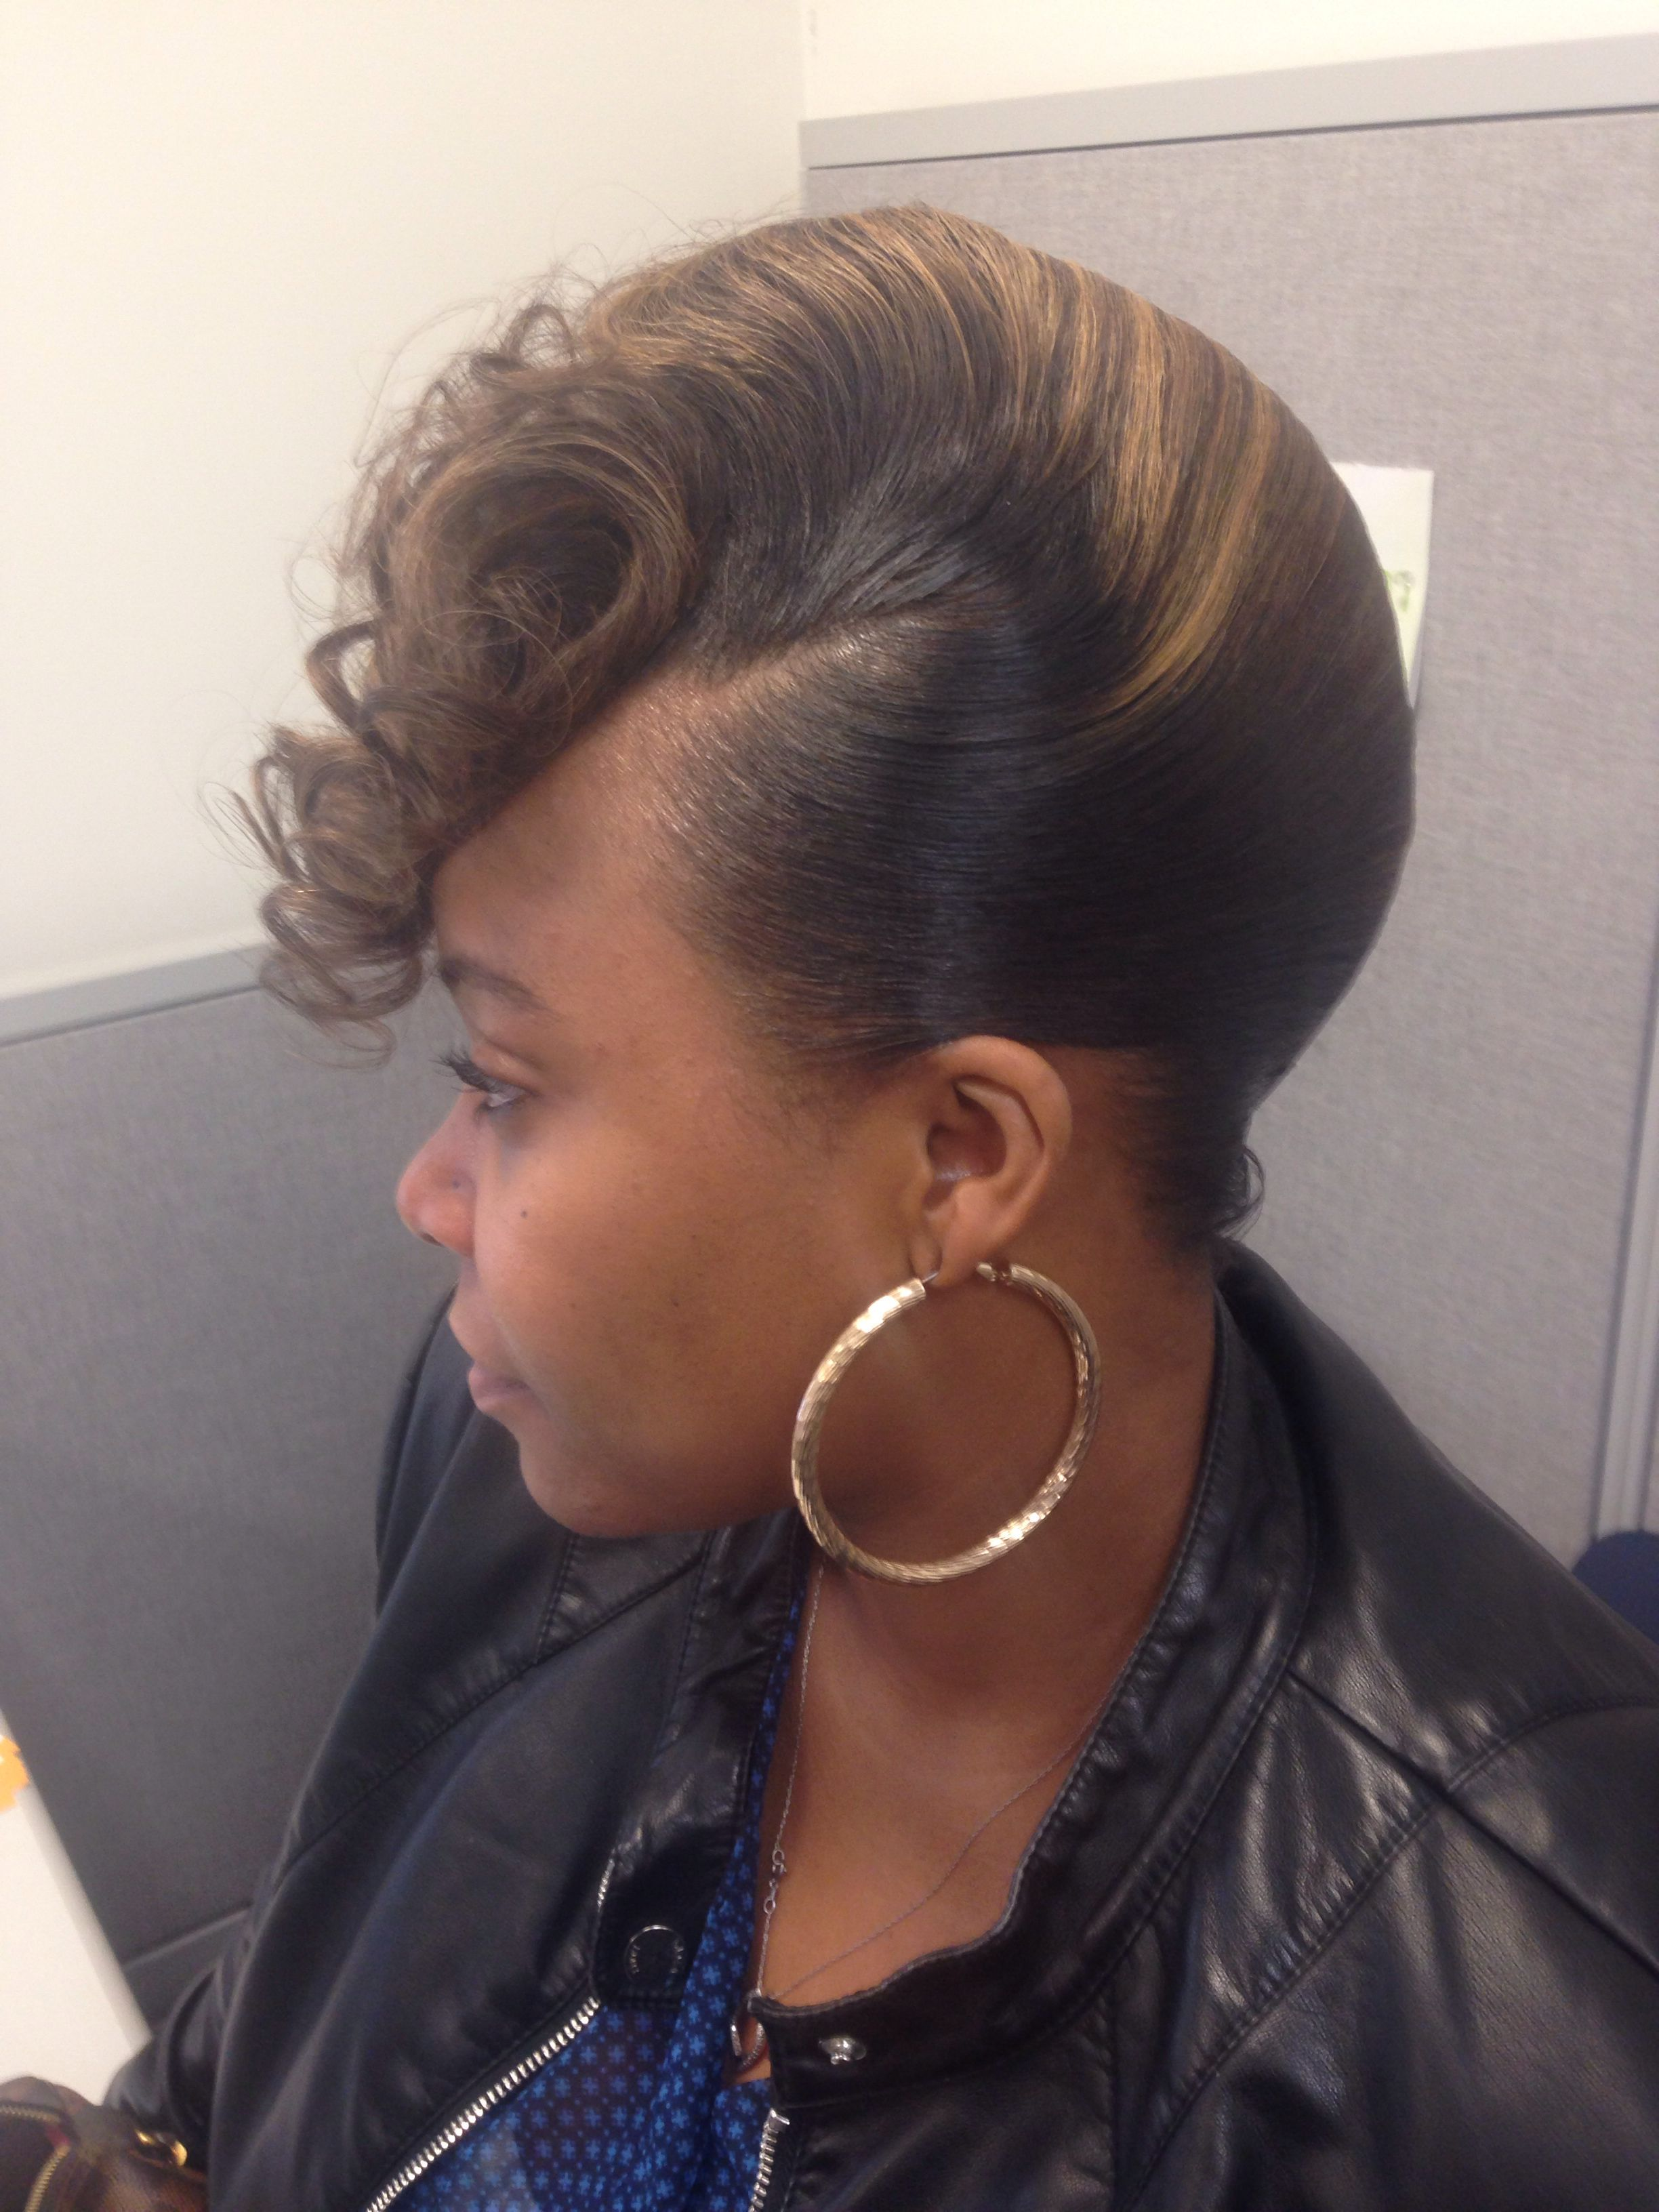 French Roll Hairstyle Black Hair : french, hairstyle, black, French, Black, Women, Hairstyle,, Twist